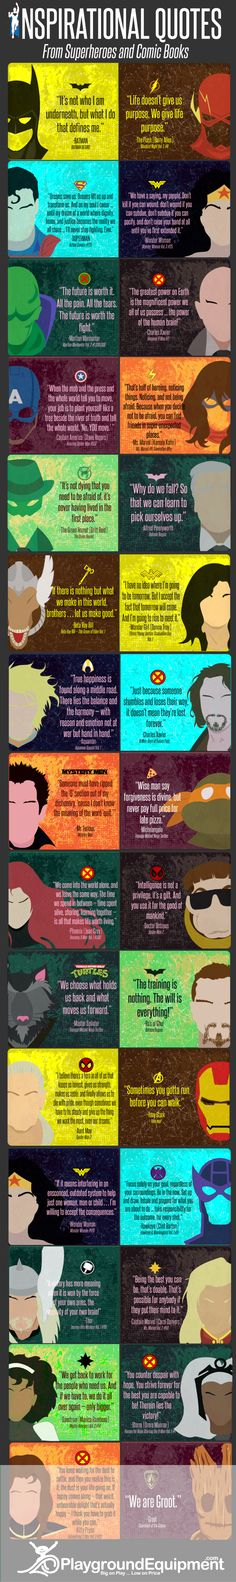 Inspirational Quotes From Your Favorite Superheroes Infographic